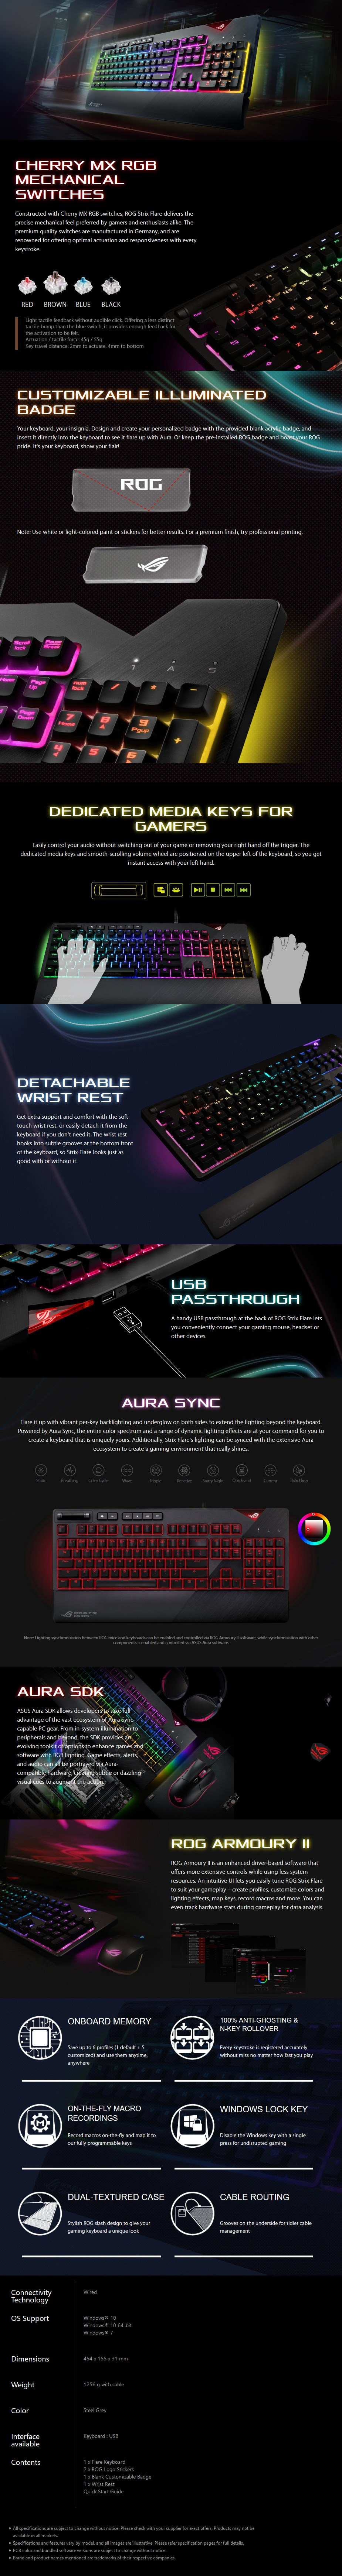 Asus ROG Strix Flare RGB Mechanical Gaming Keyboard - Cherry MX Brown